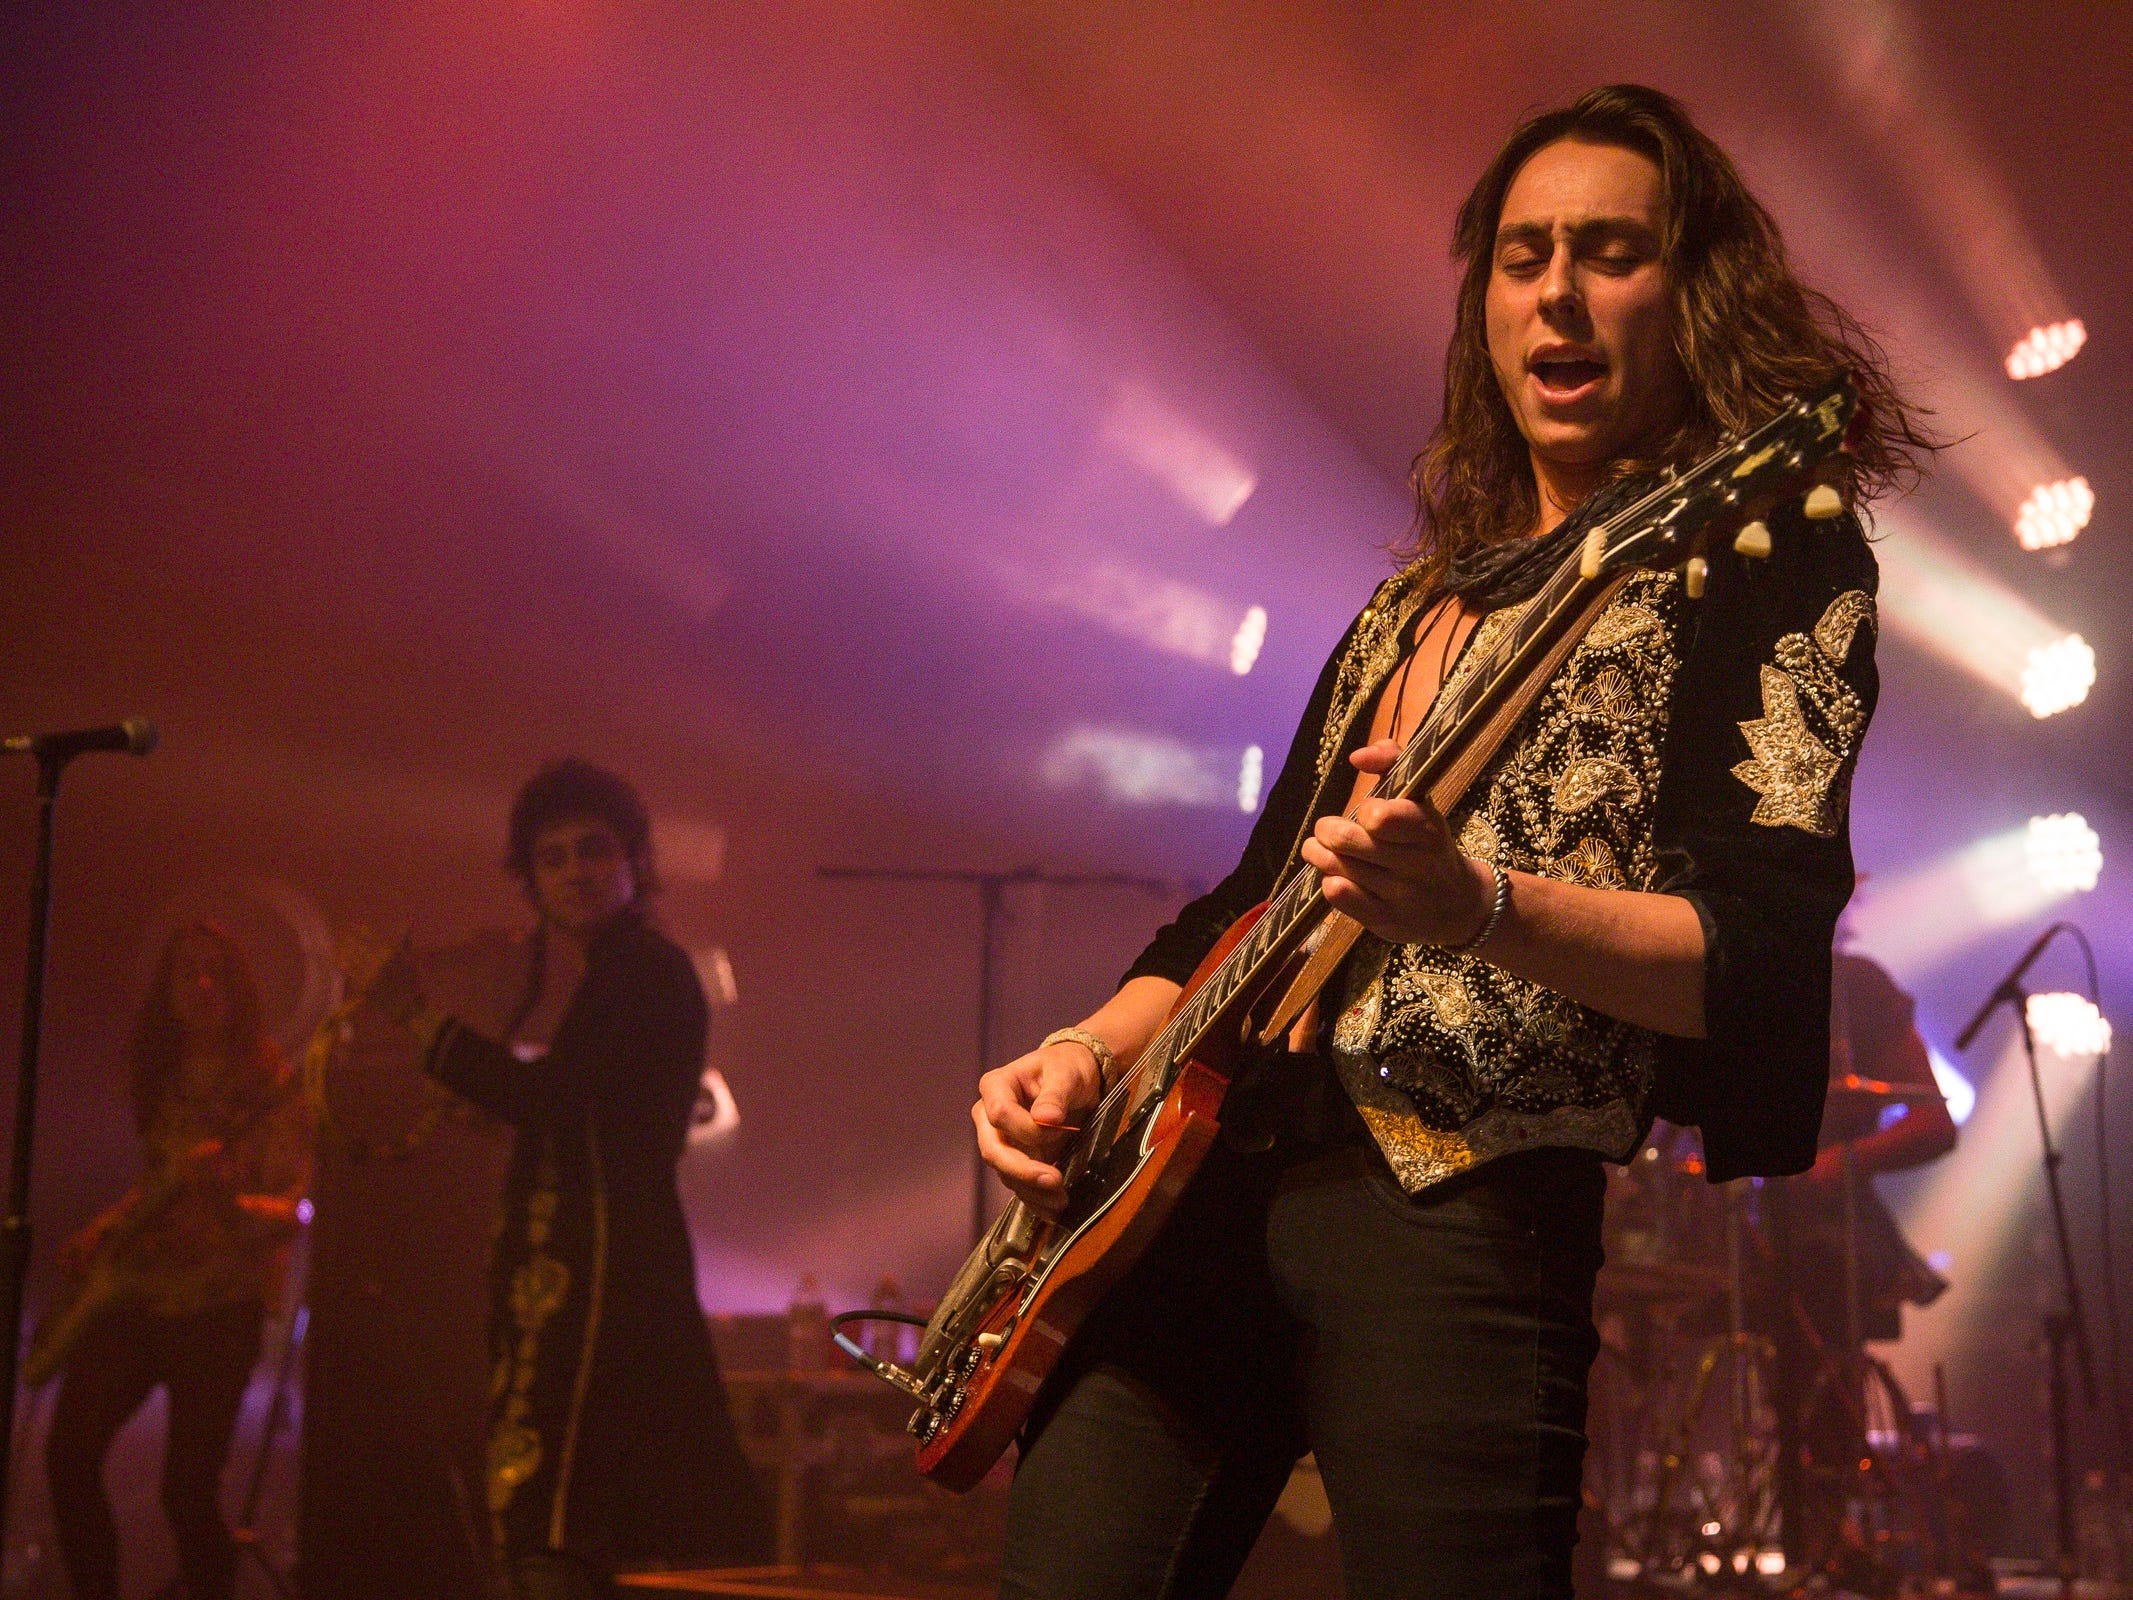 Greta Van Fleet performs in front of a sold out crowd at The Fillmore Detroit on May 22, 2018 in downtown Detroit.